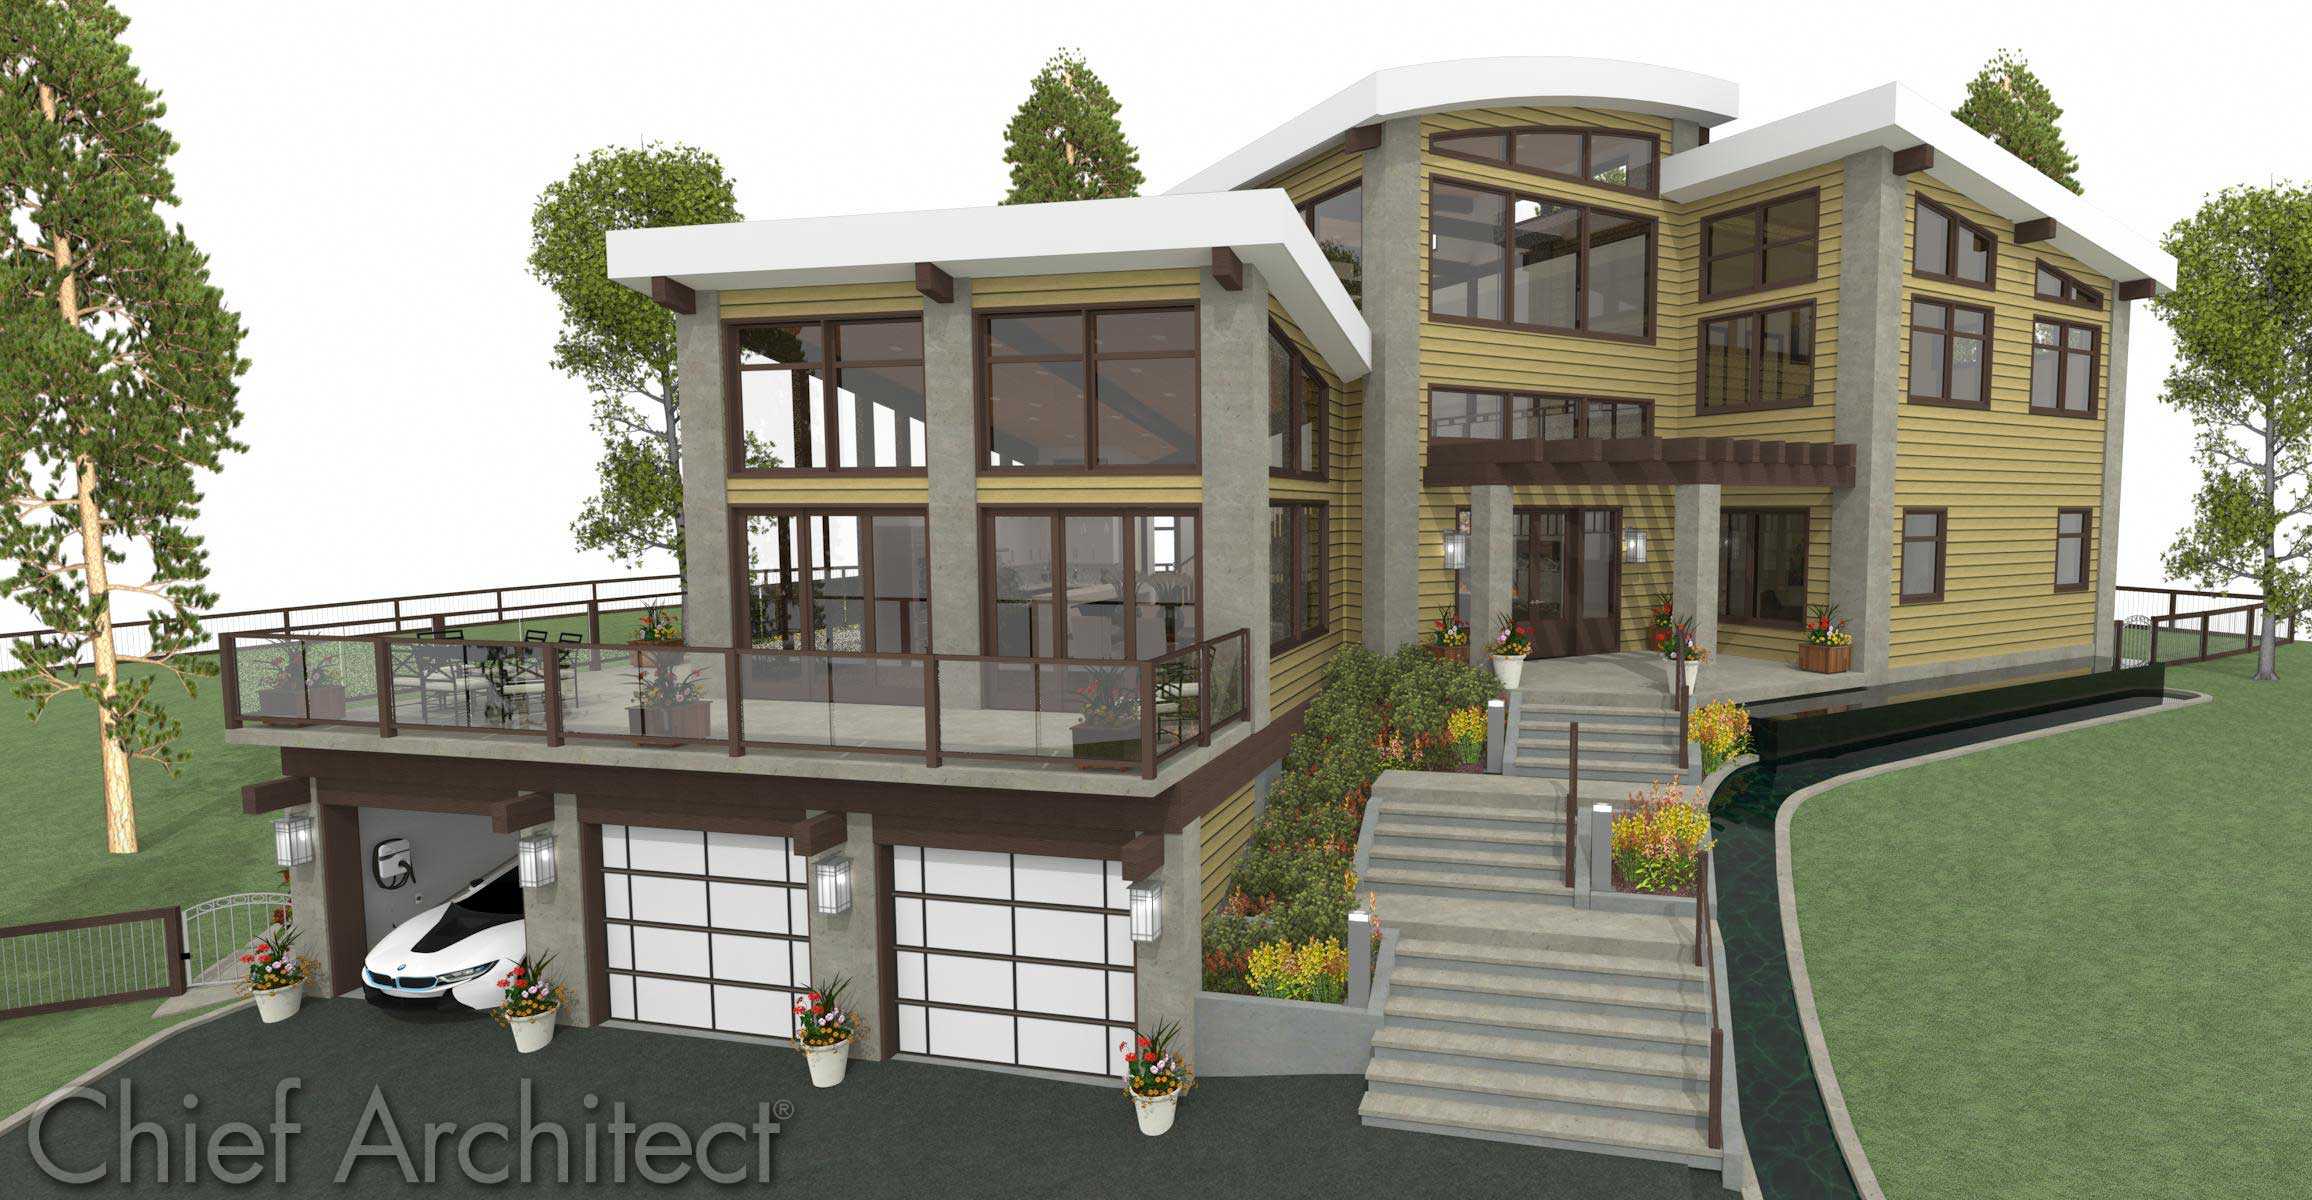 breckenridge - 3d Dream Home Designer